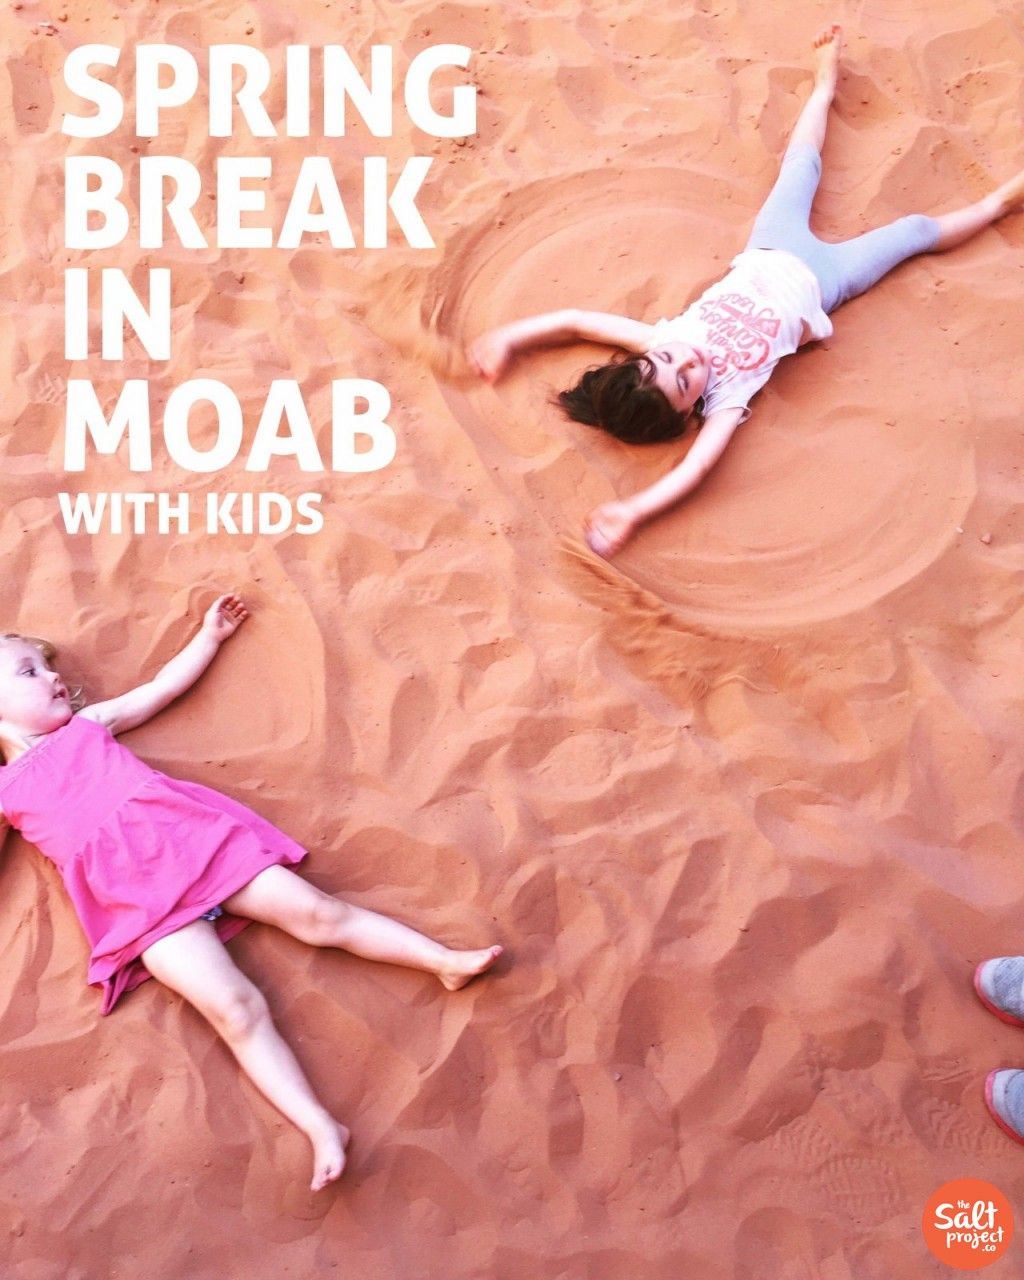 Camping in Moab   Arches National Park   Canyonlands National Park   Dead Horse Point State Park   The Salt Project   Things to do in Utah with kids